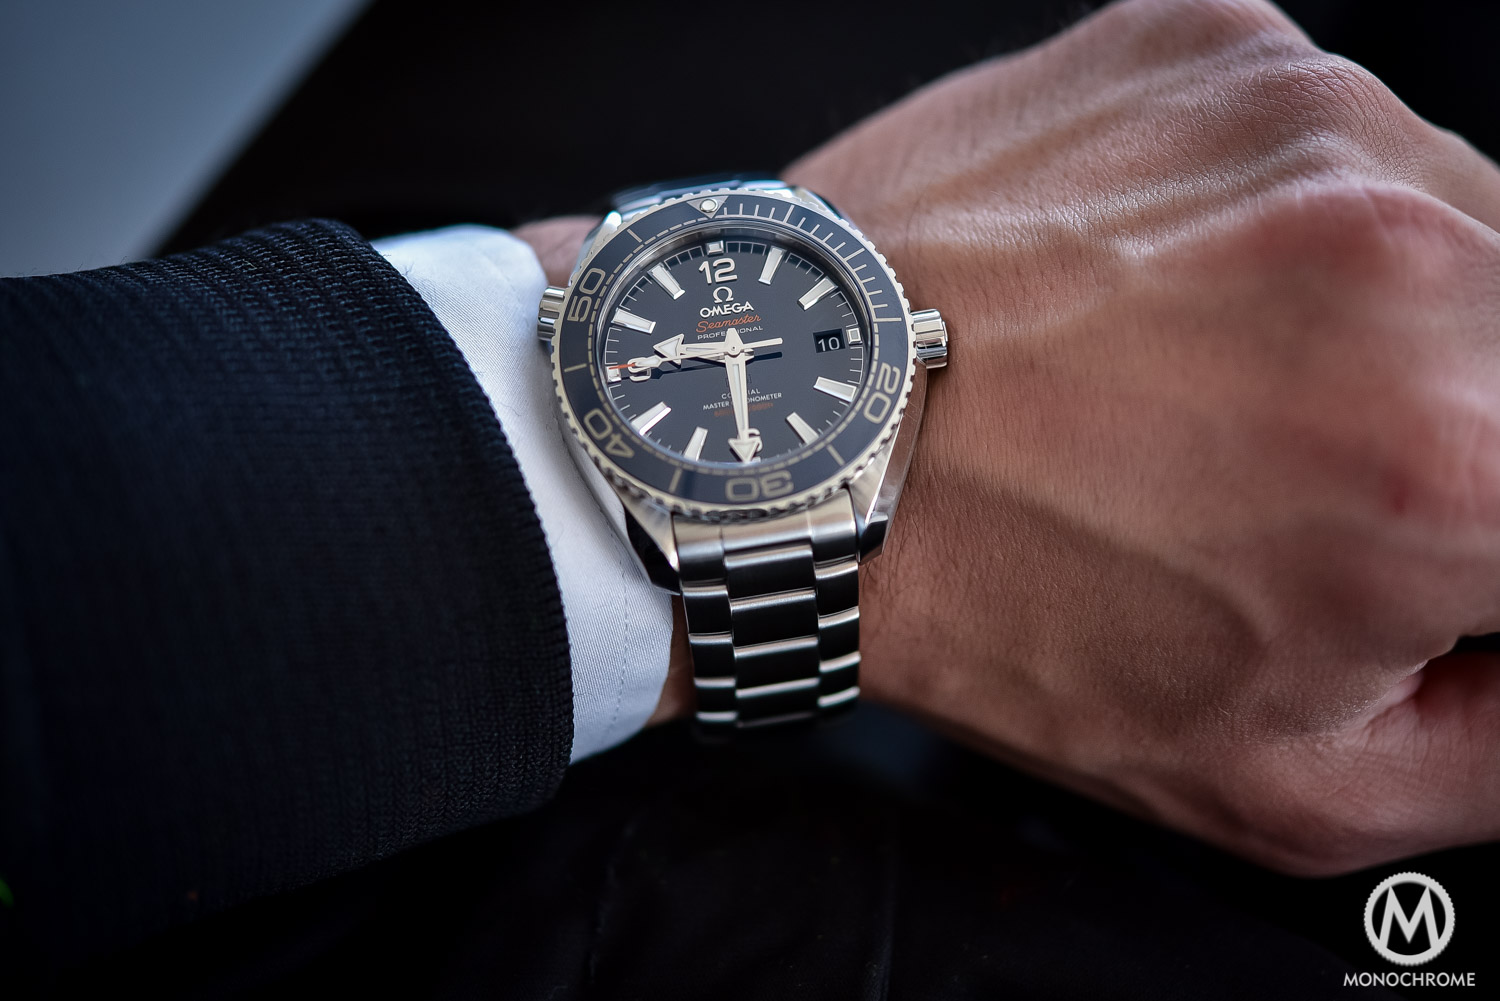 omega seamaster planet ocean 39.5 mm review